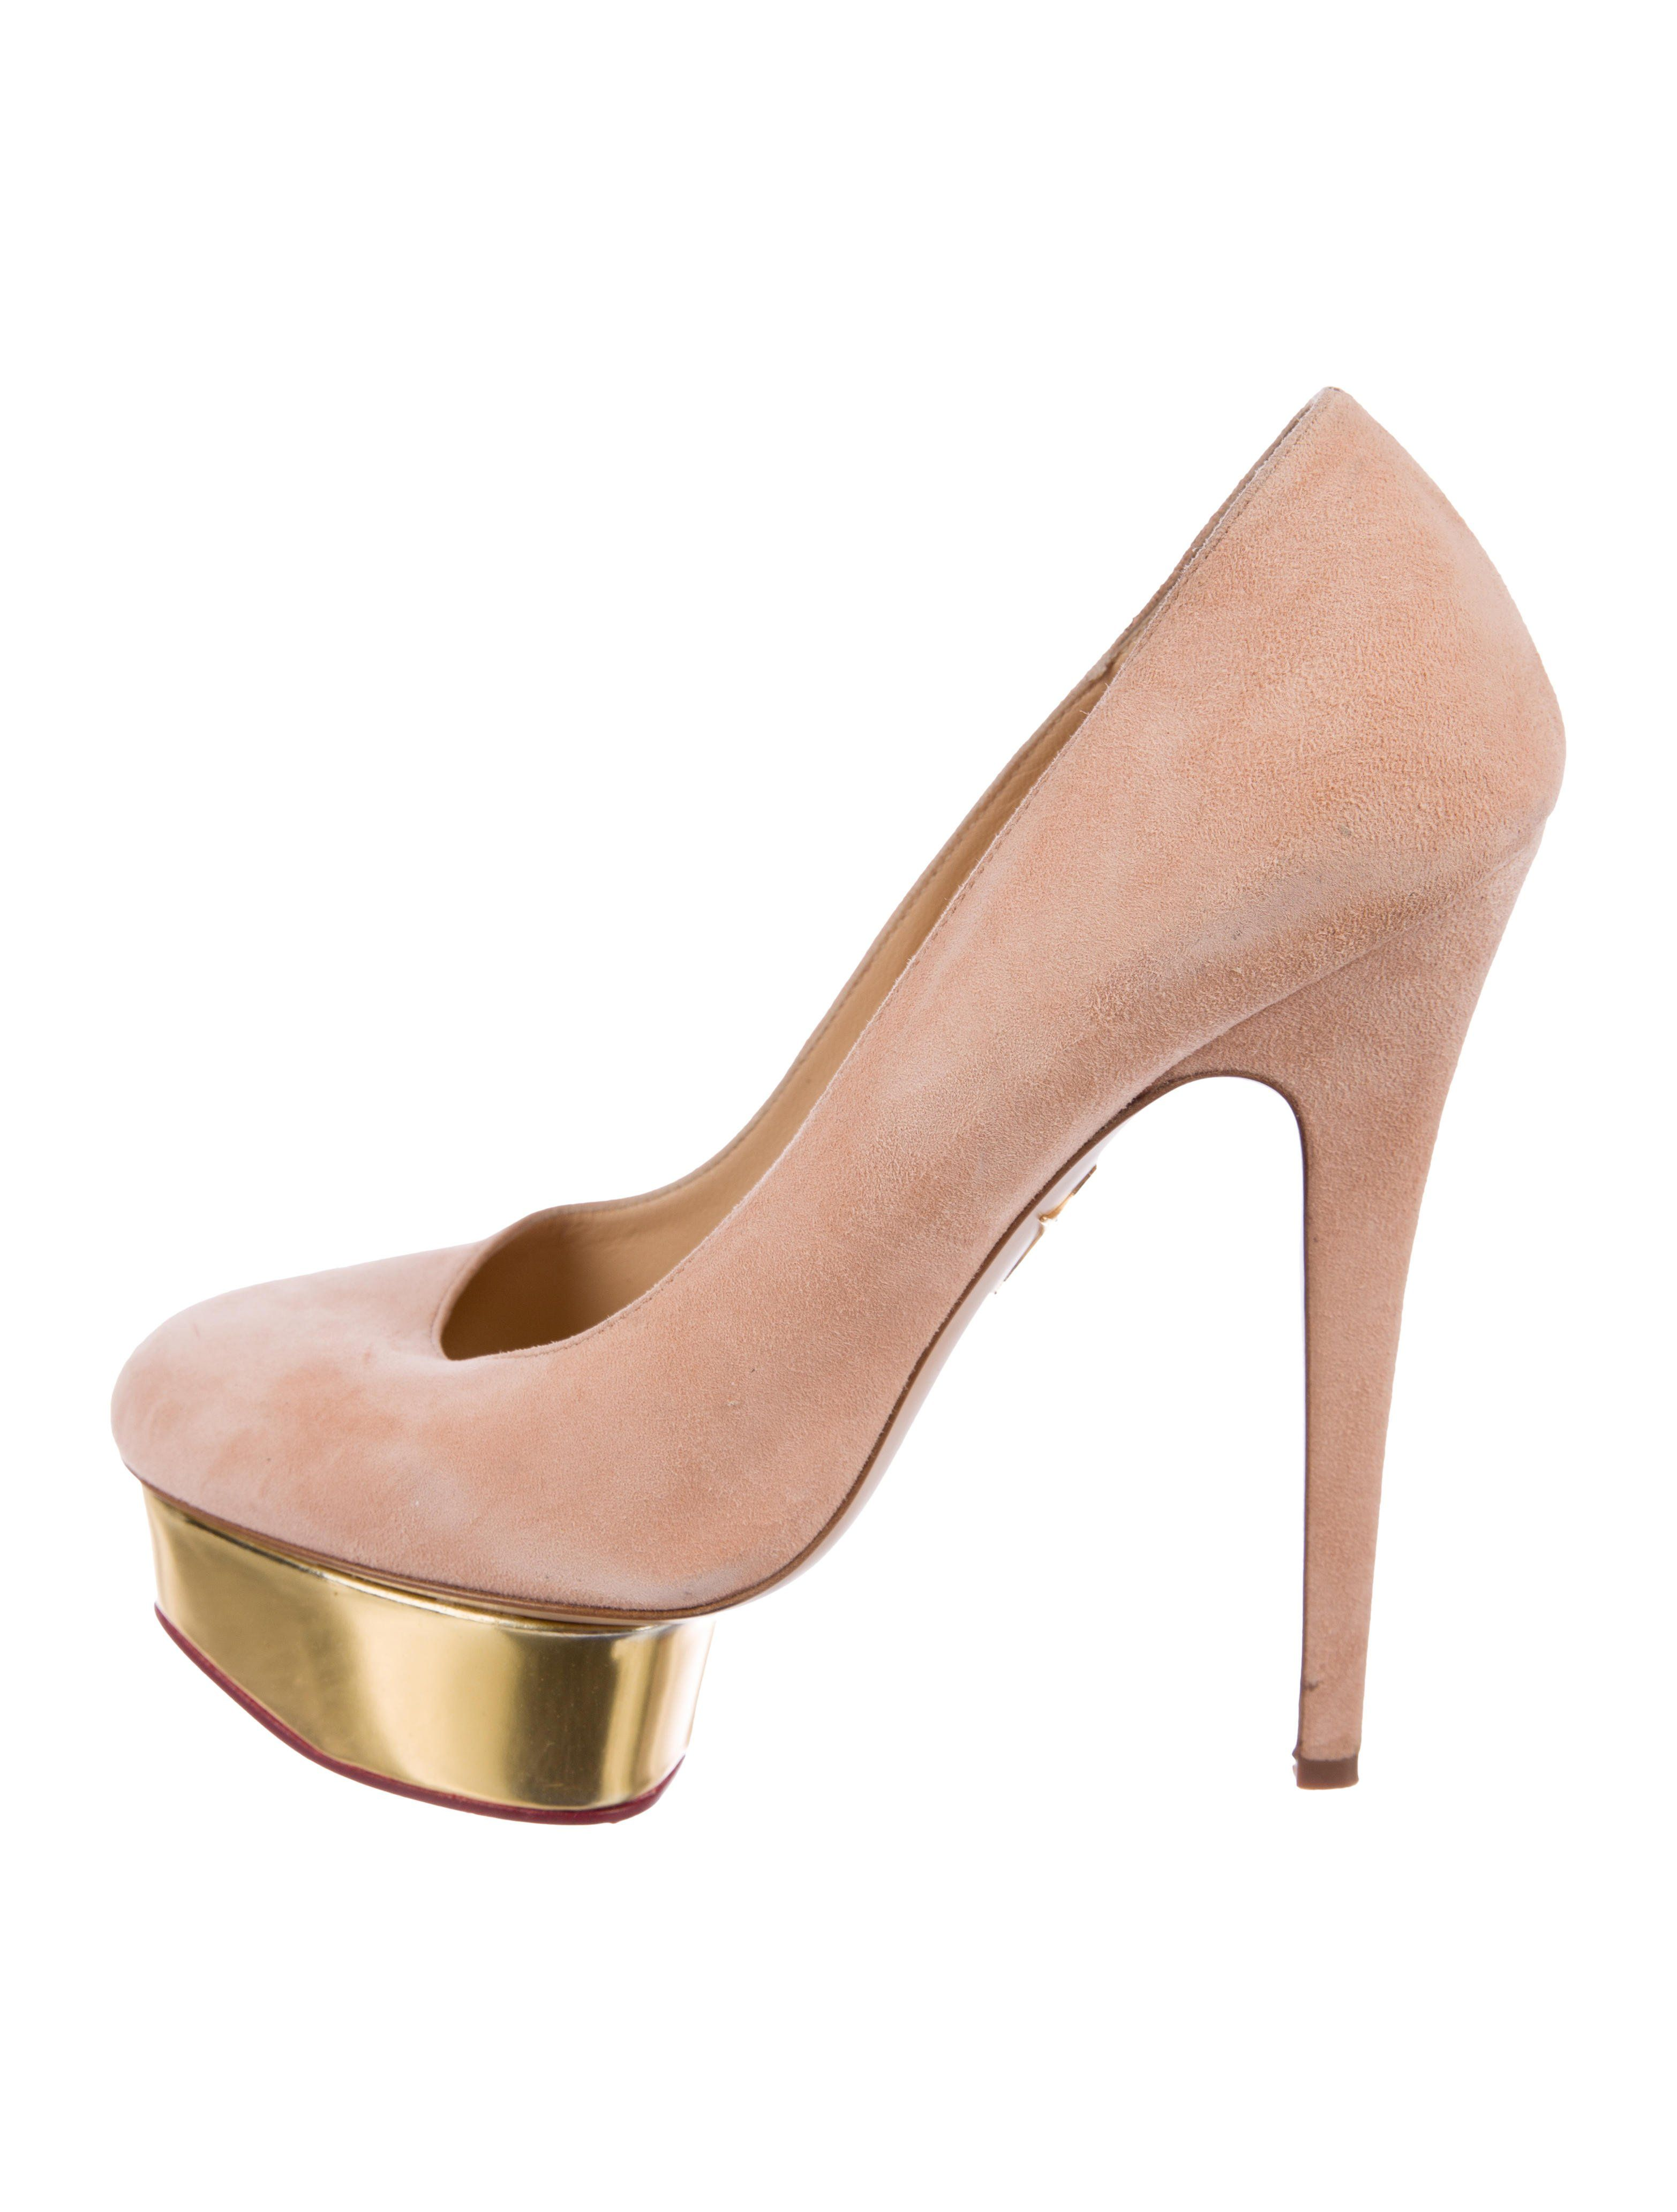 cbc158b3755 Dolly Heels by Charlotte Olympia